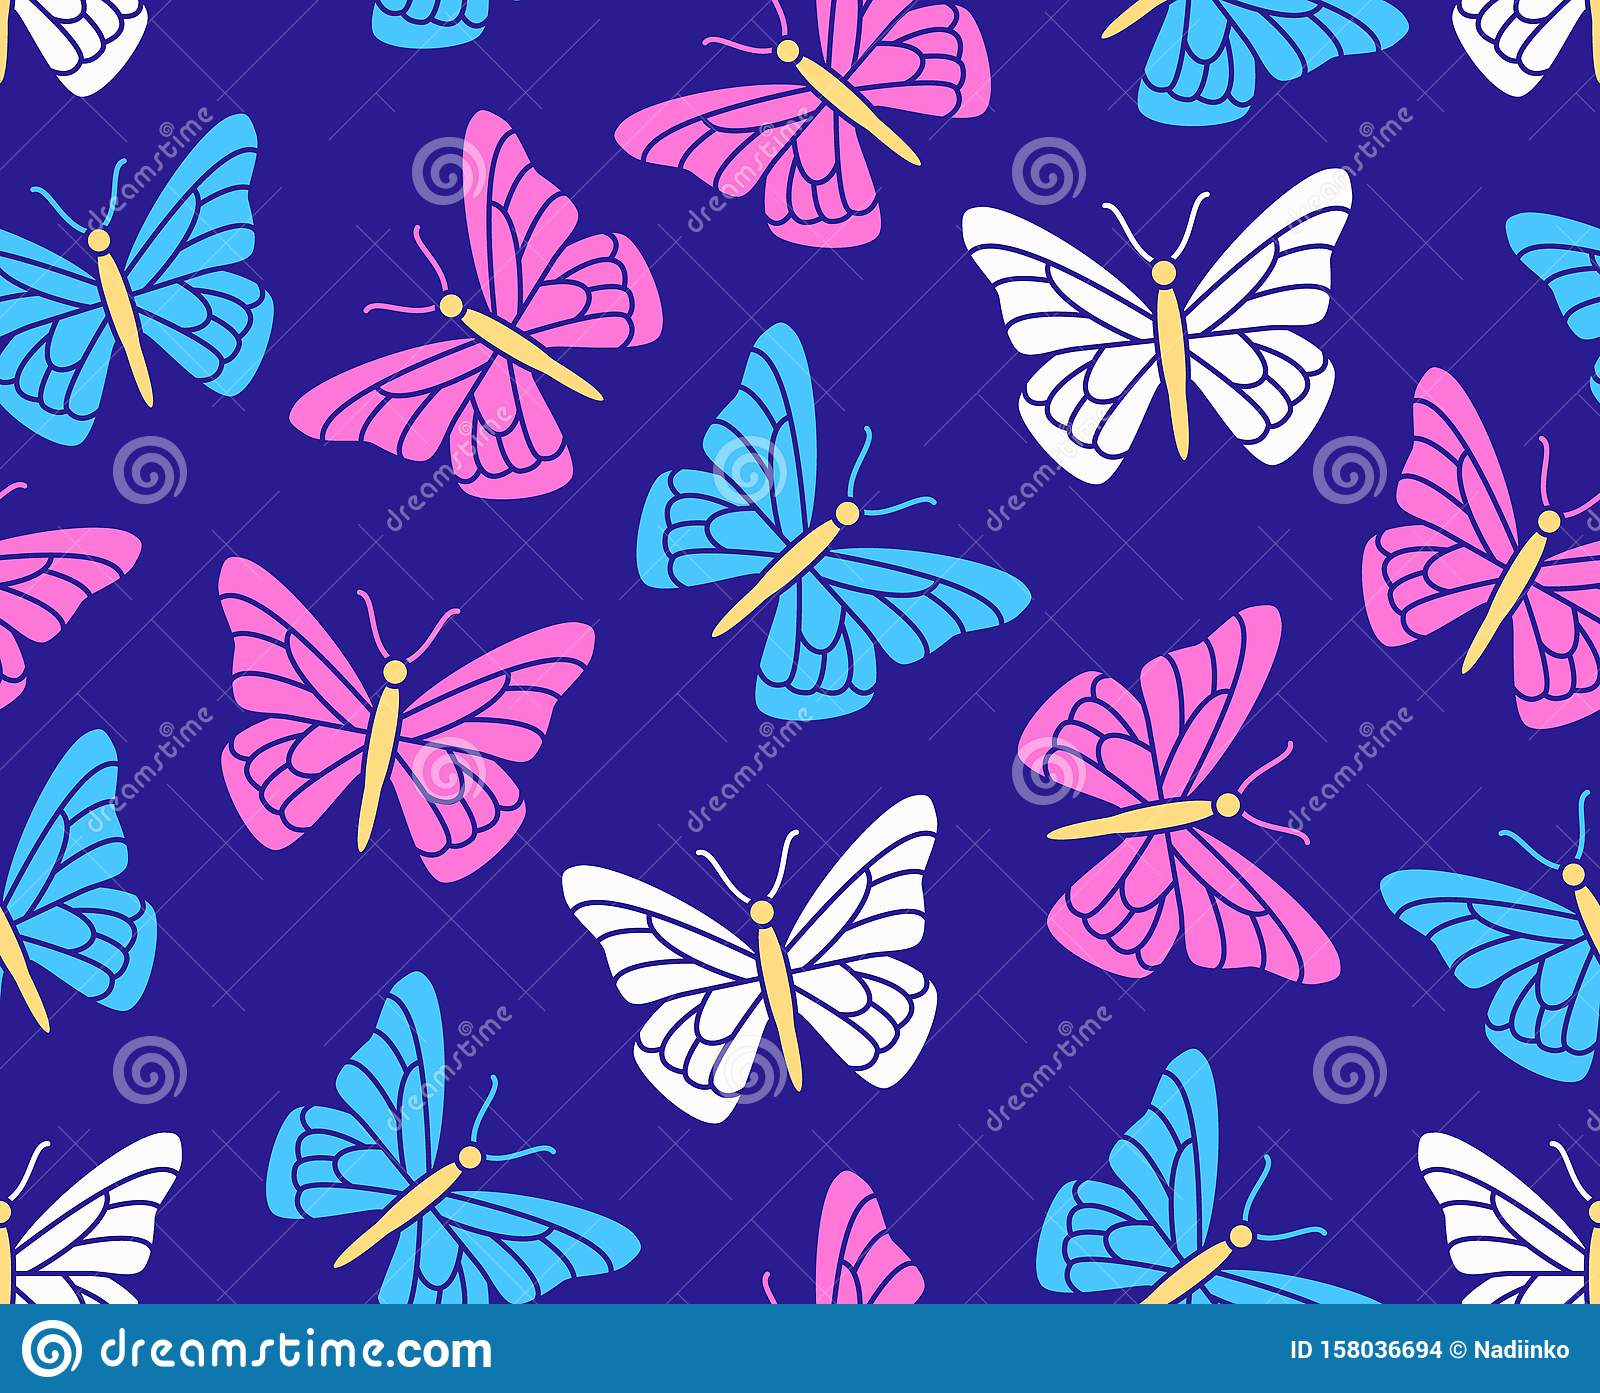 Butterfly Seamless Pattern. Flying Insects Background